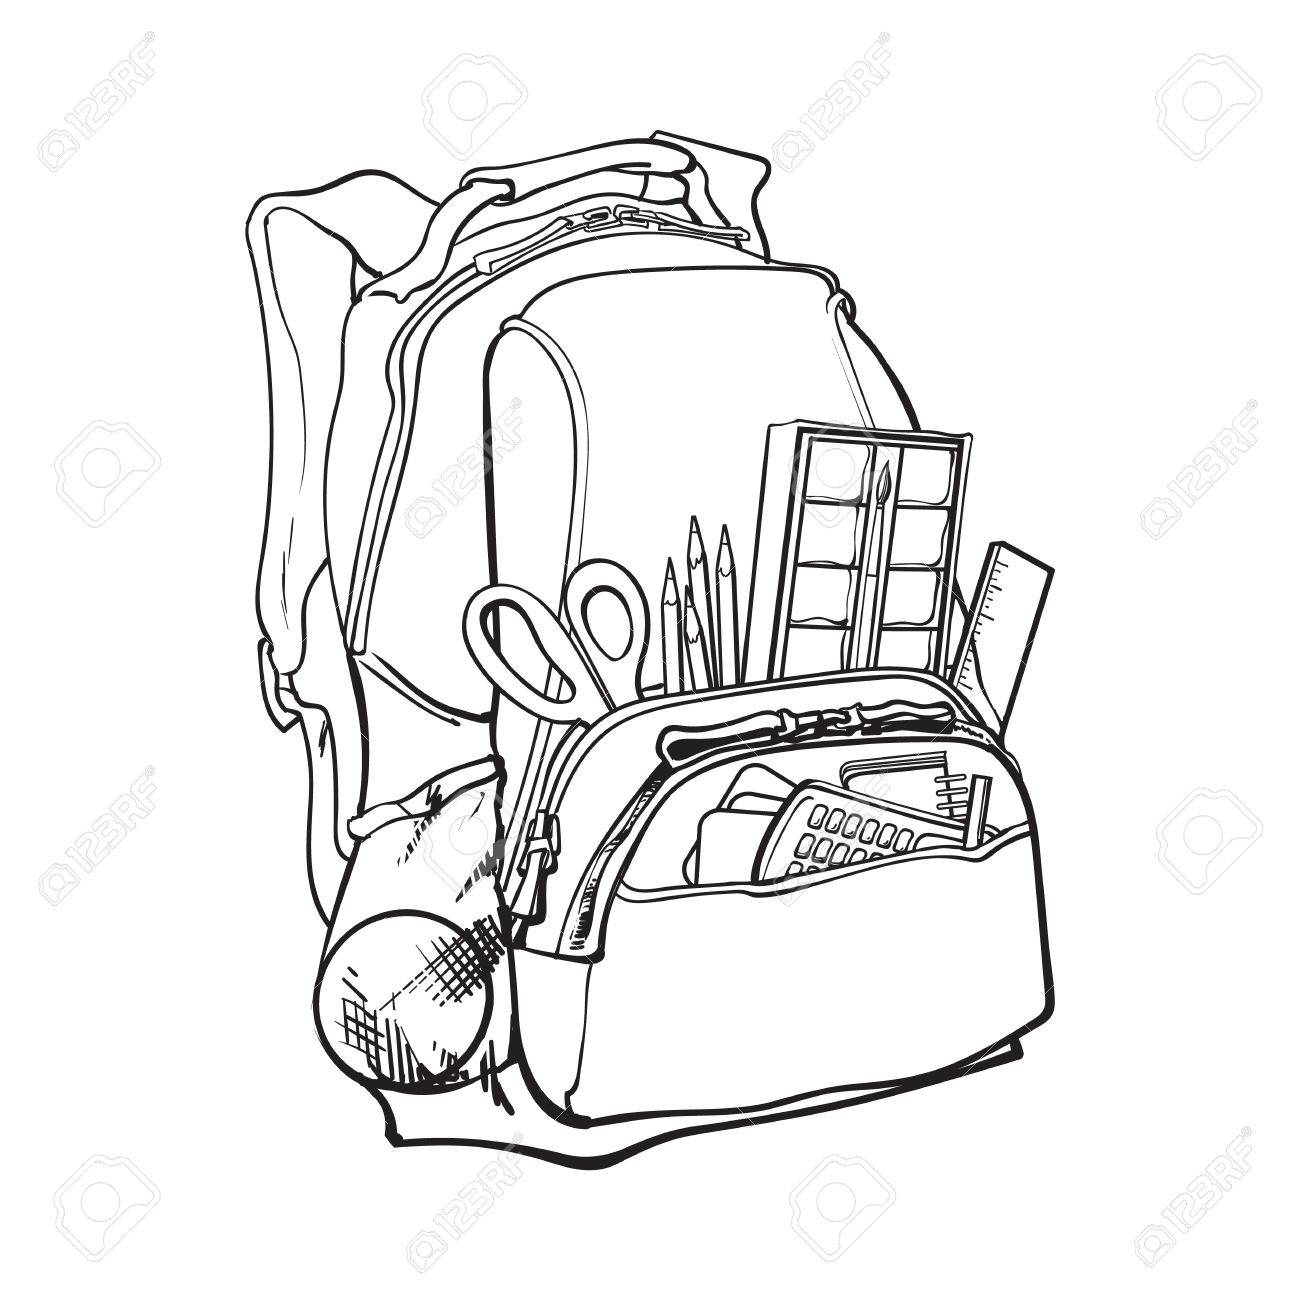 1300x1300 Backpack Packed With School Items, Supplies, Black And White